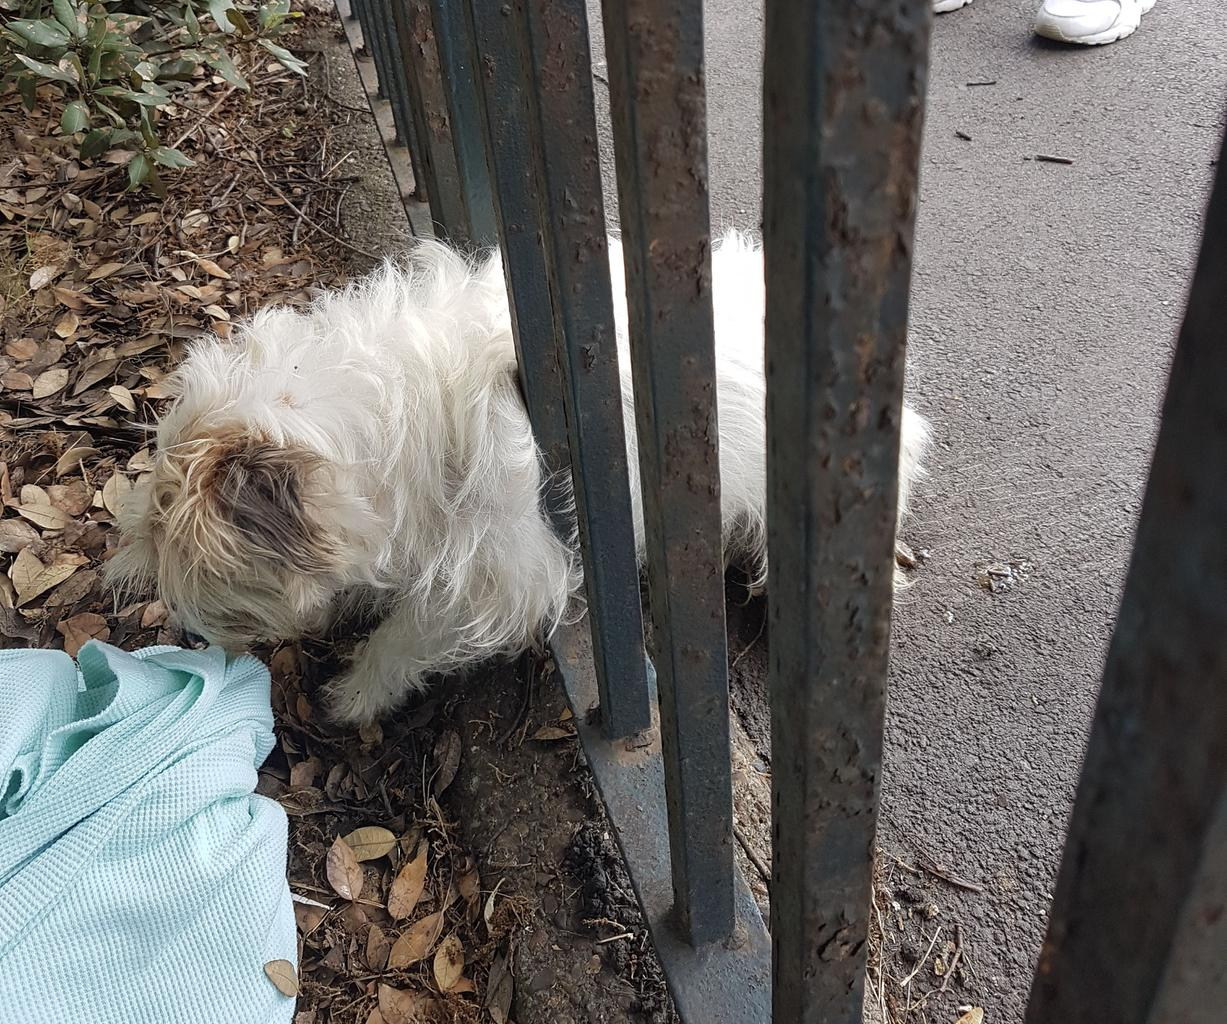 A dog on the run after escaping from her home ended up in a bit of a tight spot - wedged between fence railings! RSPCA officer called in to help with bar-king mad rescue! Tags: dog dog stuck in fence escaped dog Jack  Russell Terrier RSPCA